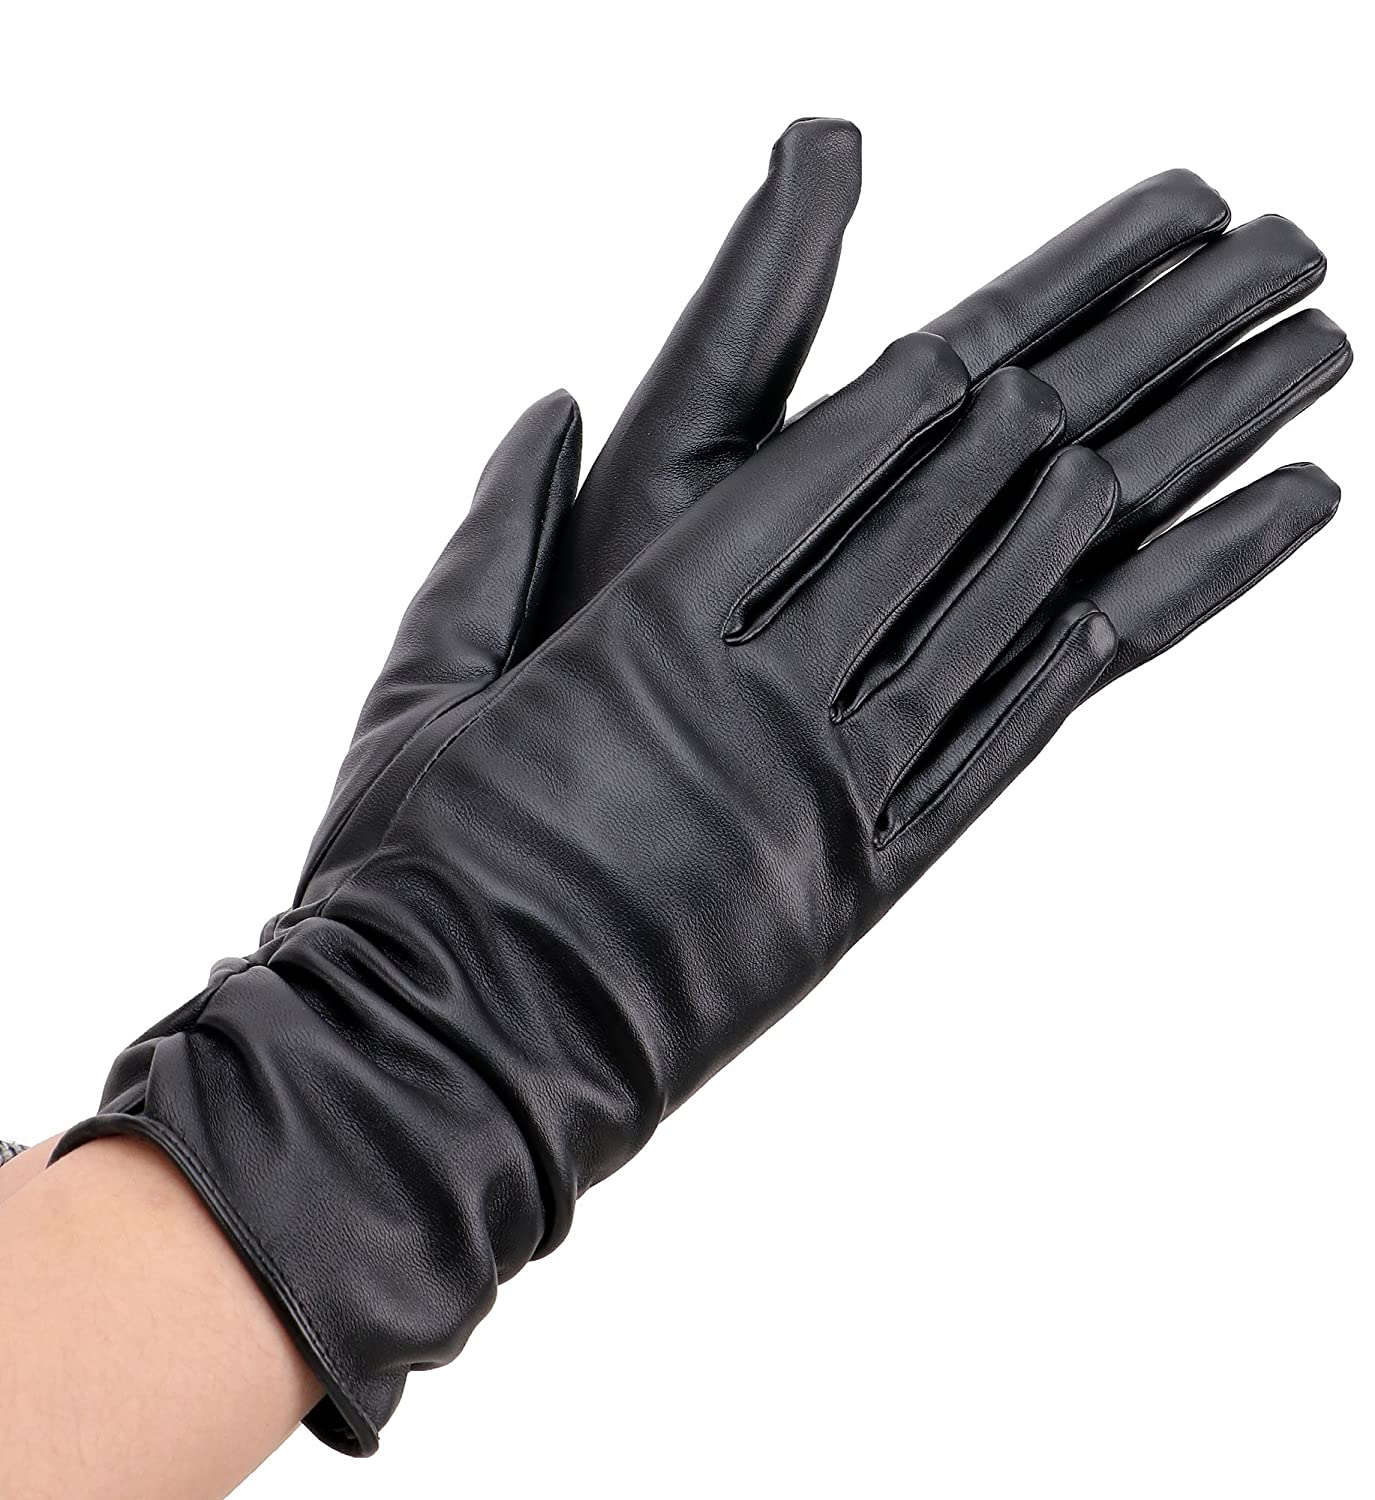 Womens leather gloves vancouver - Simplicity Women S Elegant Warm Long Pu Leather Gloves Black Amazon Ca Clothing Accessories